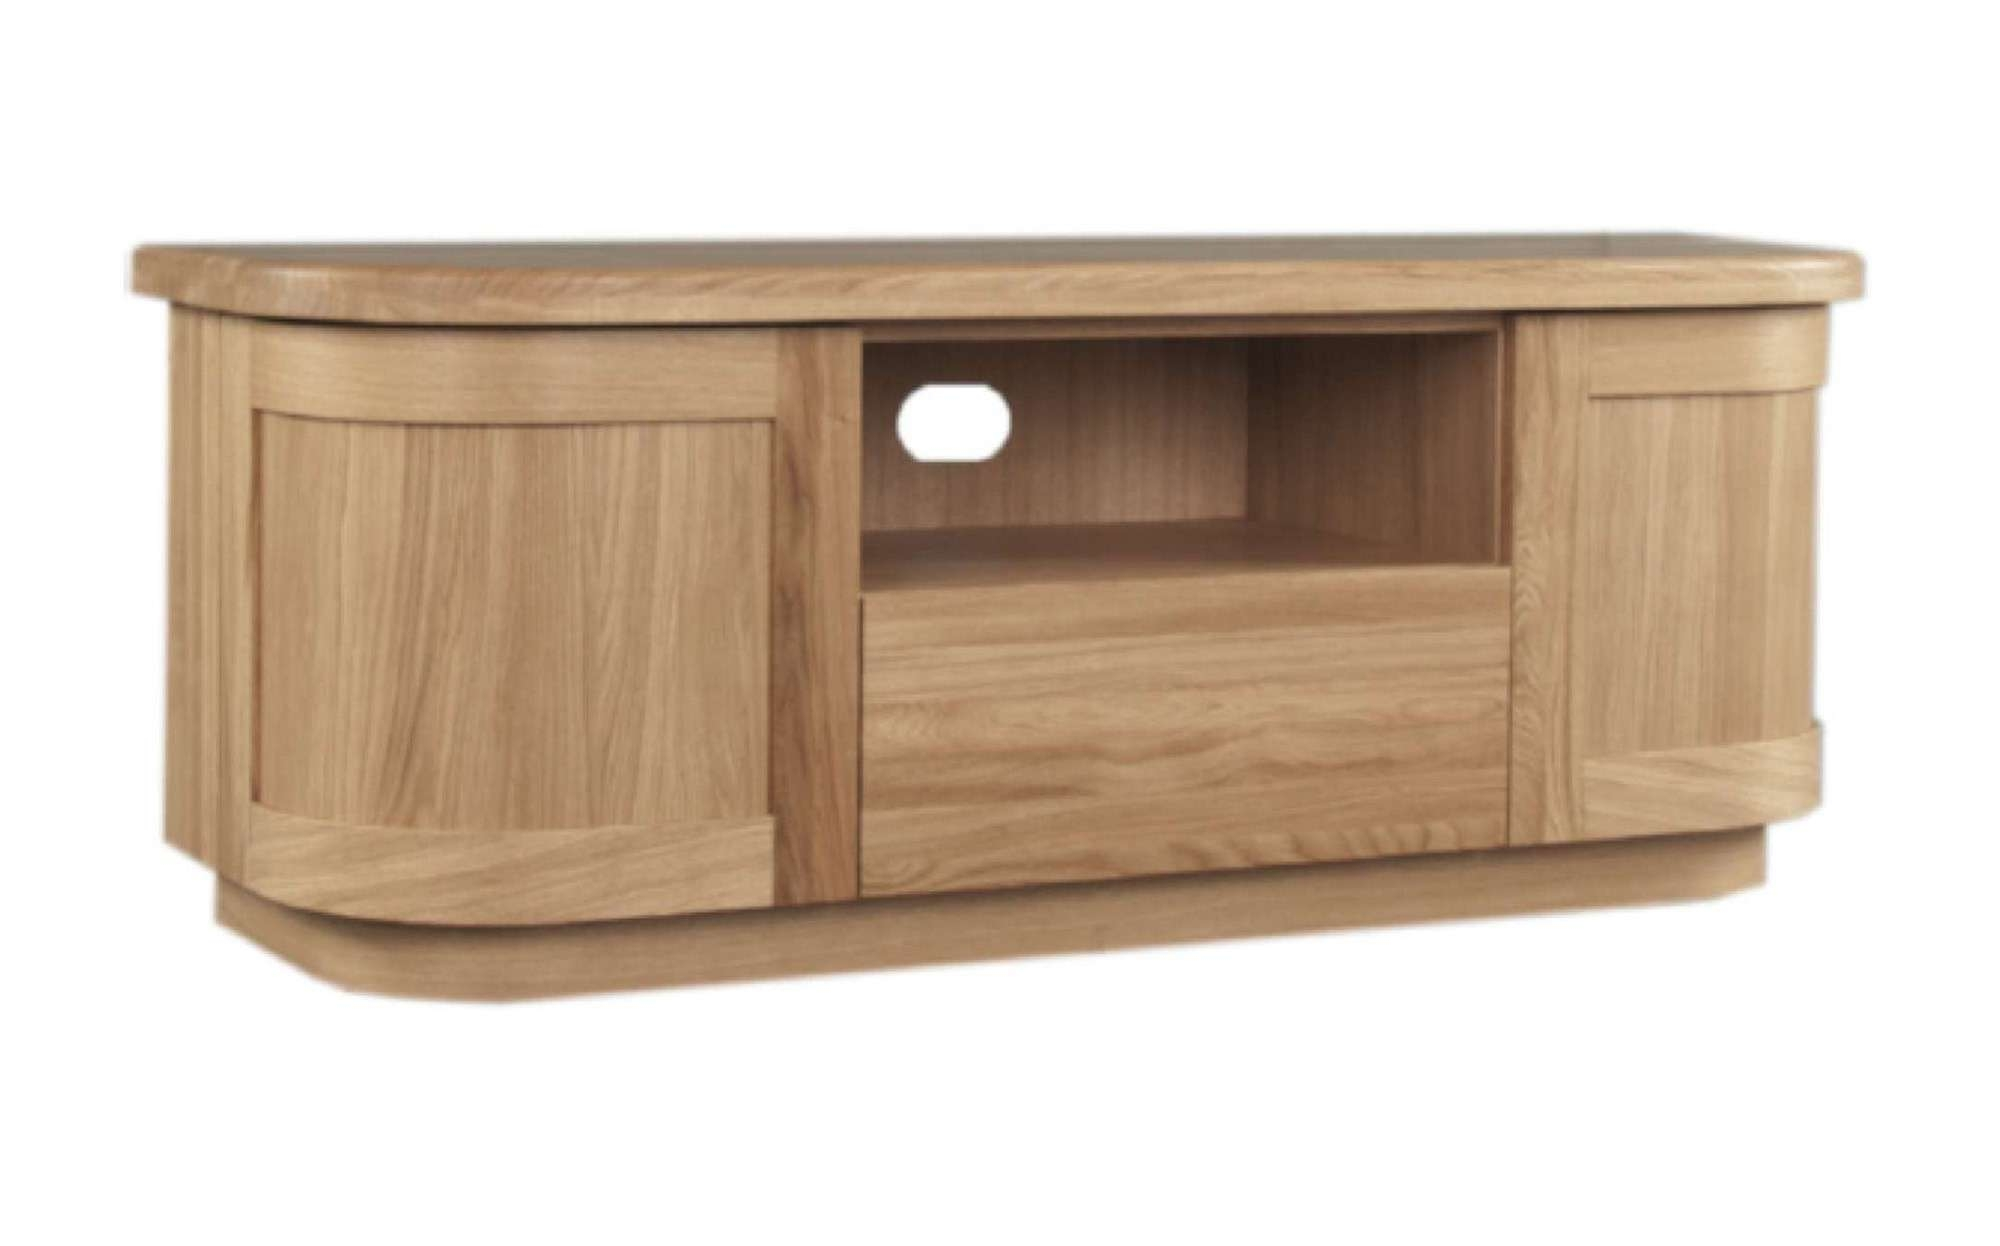 Sicily Solid Oak Tv Unit | Ice Interiors For Oak Tv Cabinets (View 10 of 20)